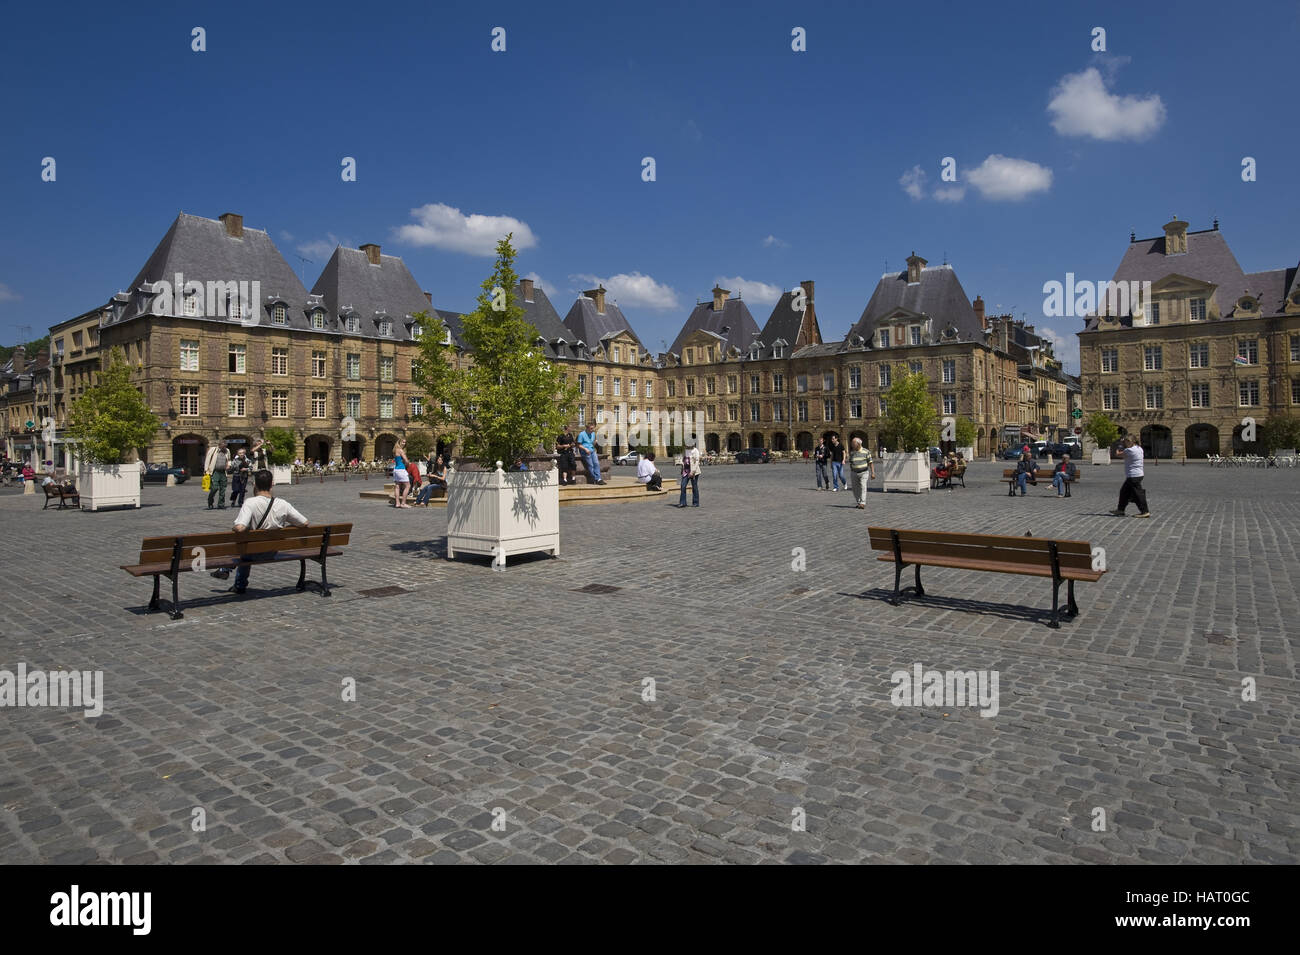 Place Ducale - Stock Image